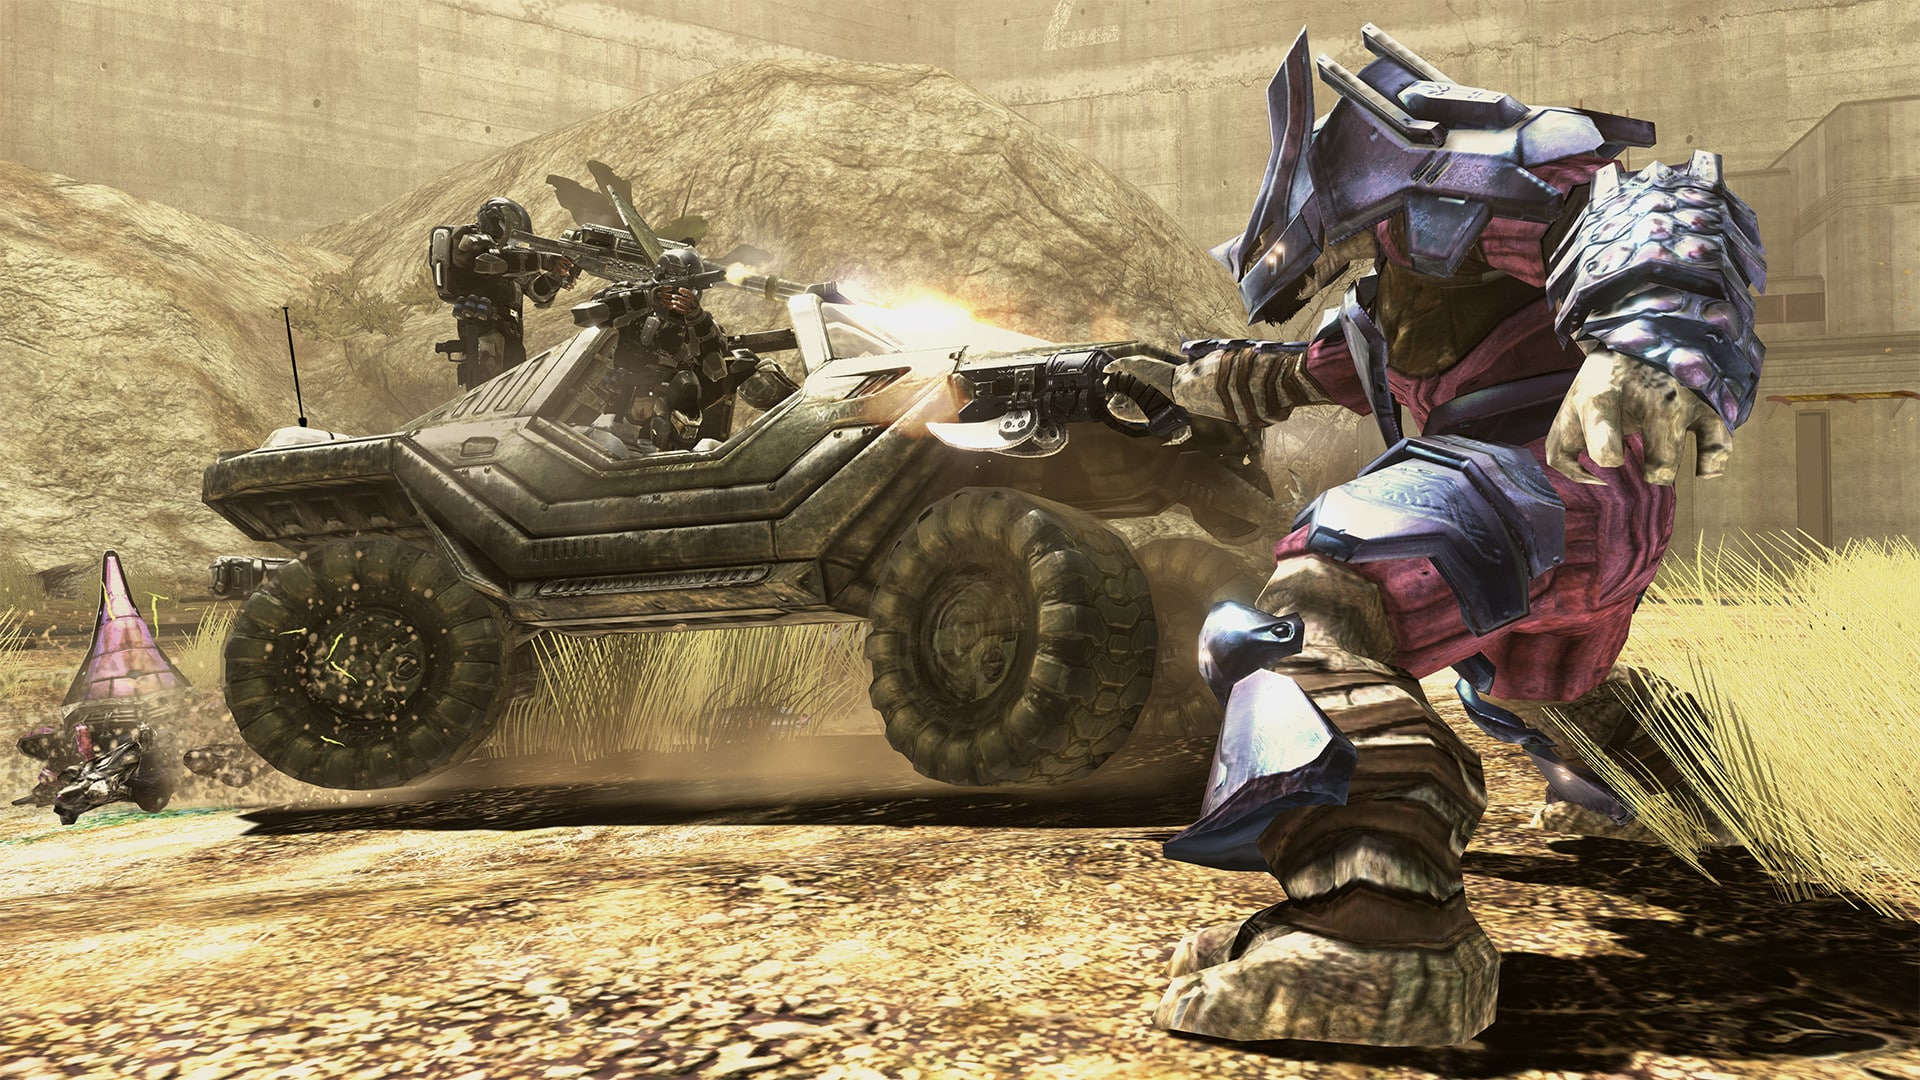 Halo 3: ODST PC port is great Halo: The Master Chief Collection MCC Bungie 343 Industries faithful port